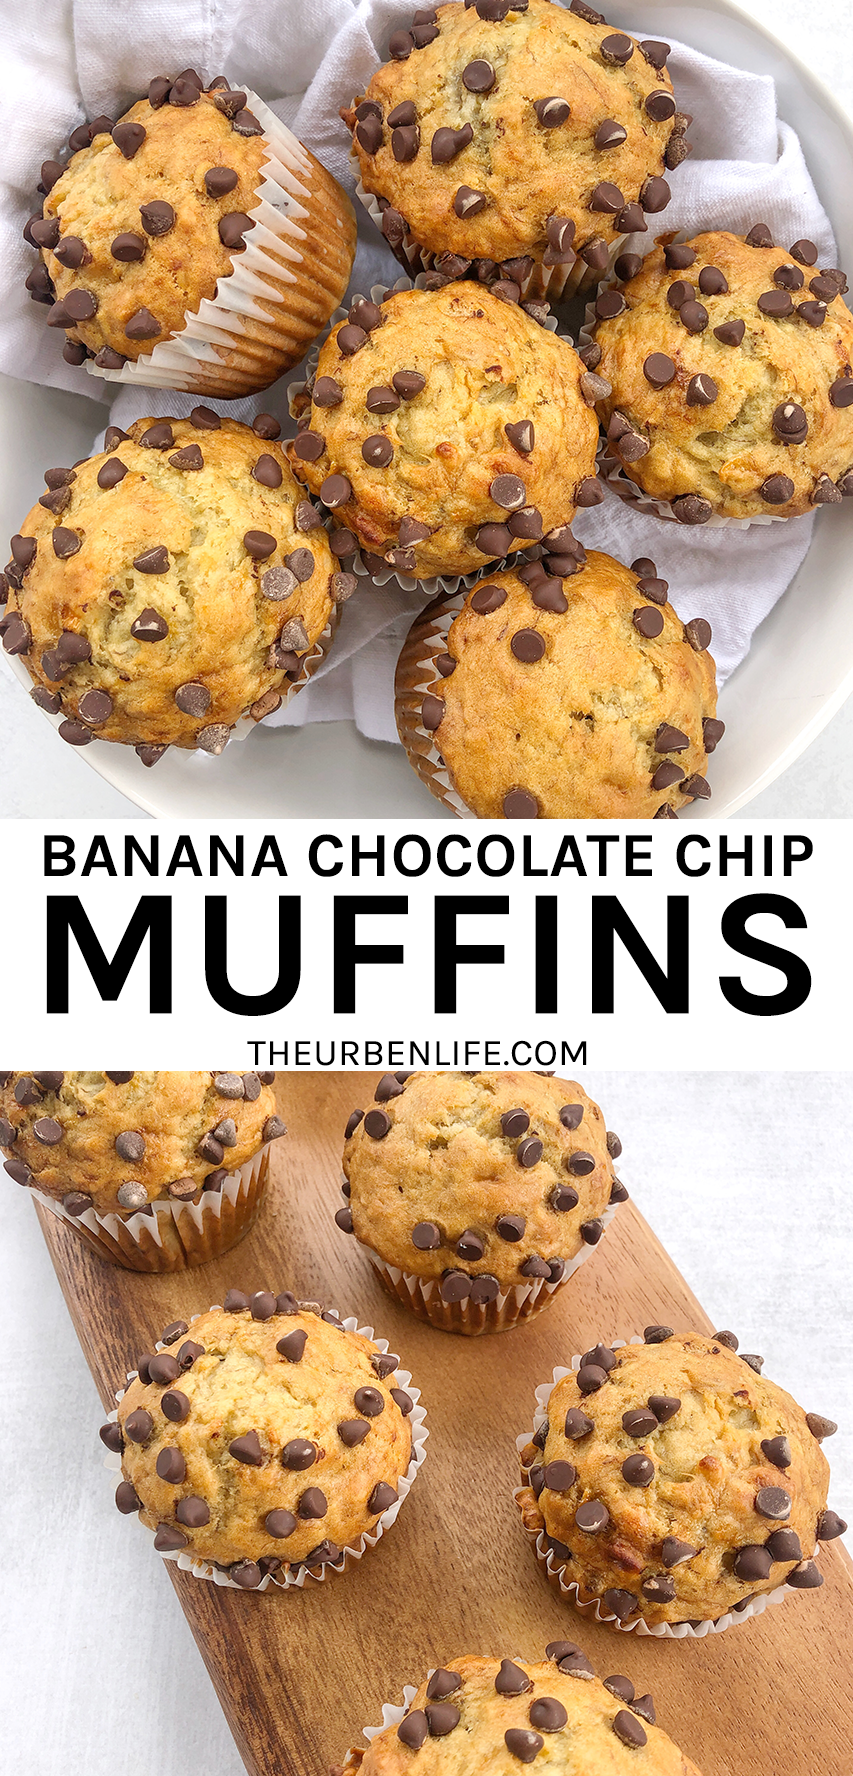 Easy Banana Chocolate Chip Muffins The Urben Life Recipe In 2020 Easy Banana Chocolate Chip Muffins Dessert Recipes Easy Banana Chocolate Chip